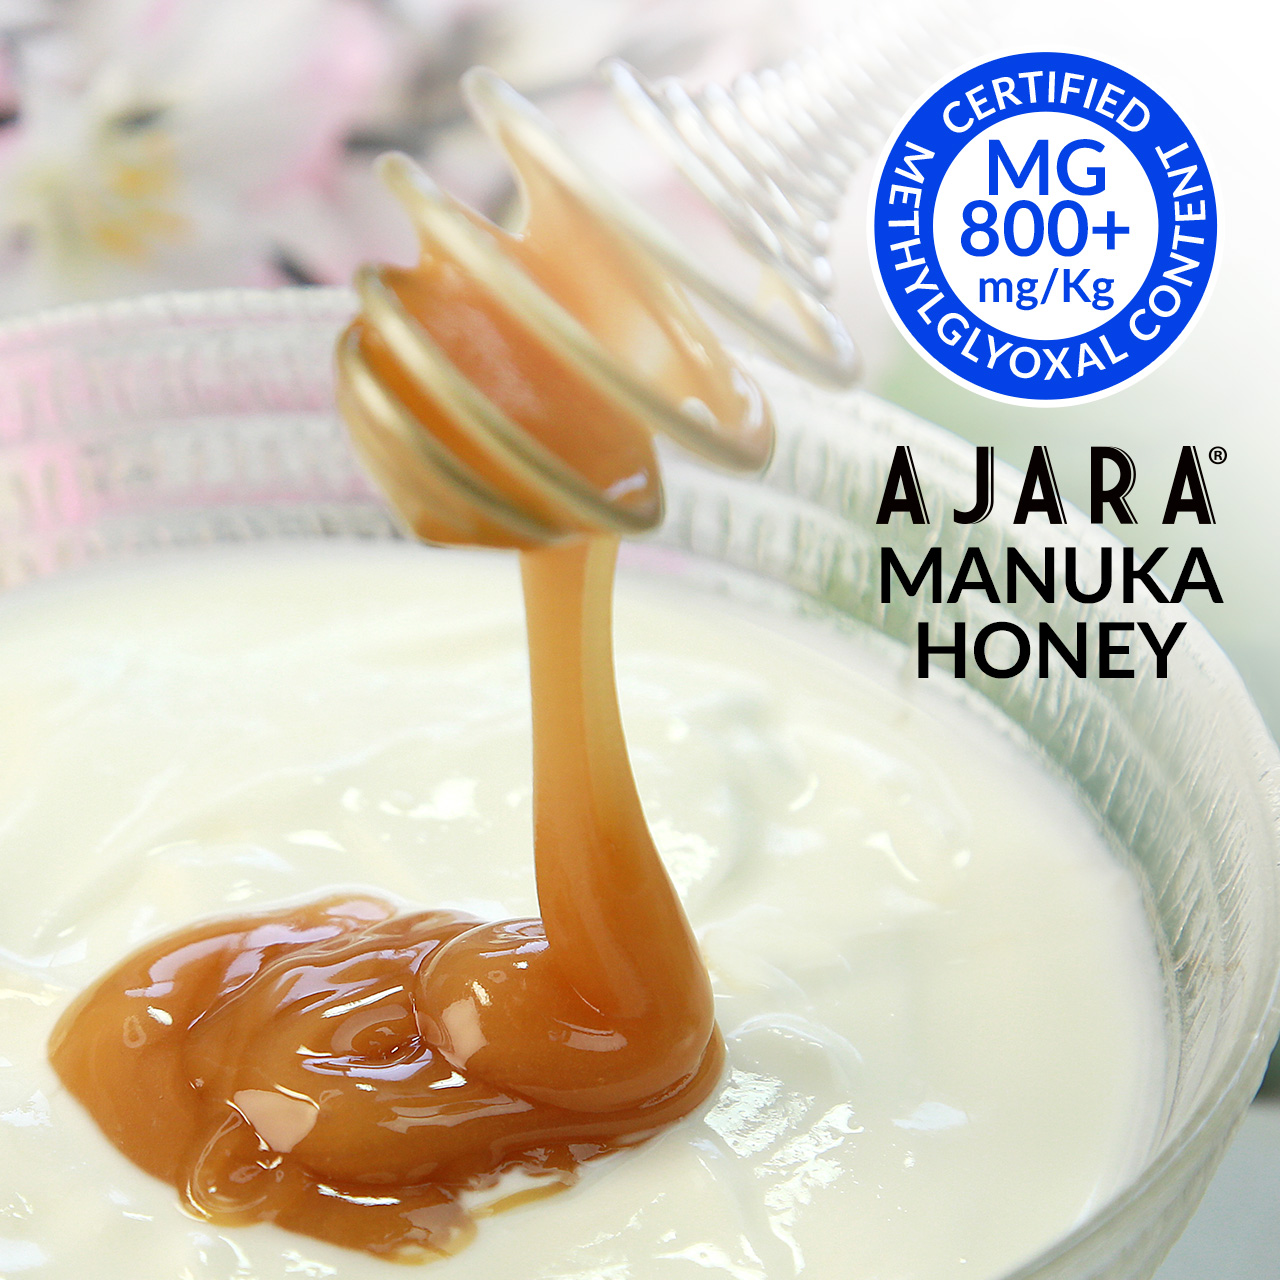 Active and therapeutic Manuka honey